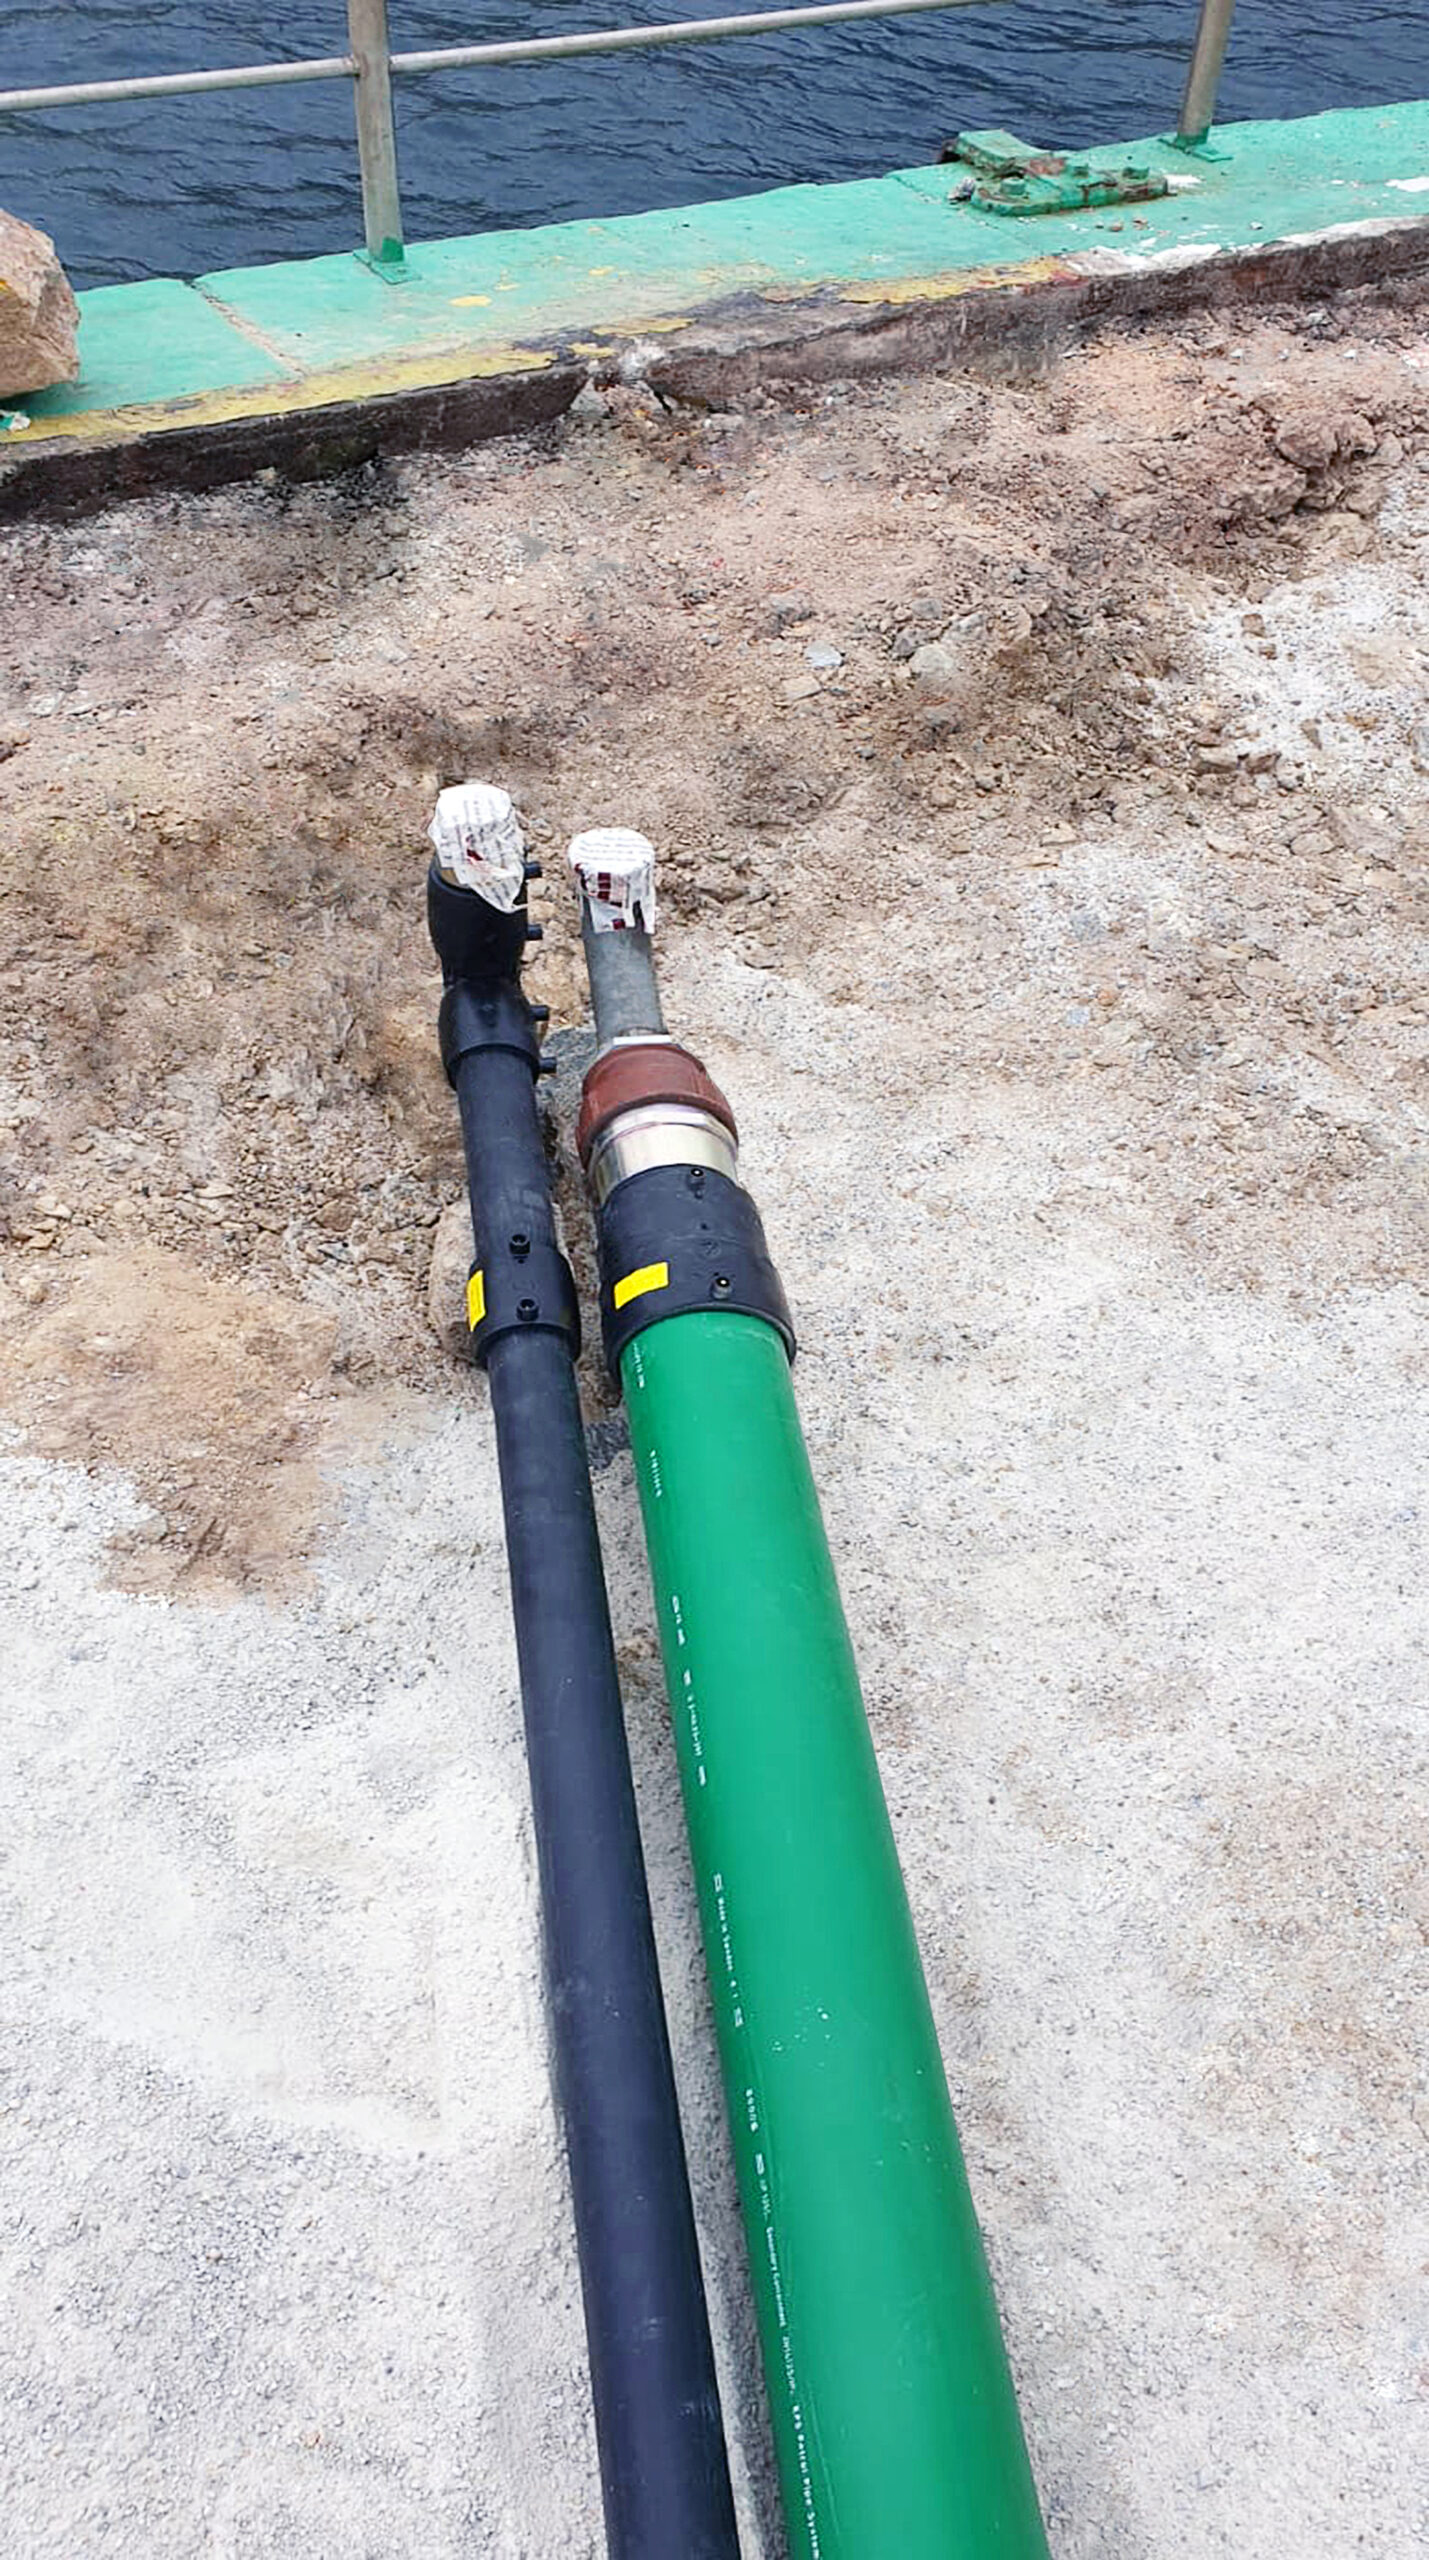 KPS' double wall pipes provide control over the interstitial space between the inner and outer pipes, meaning that a leak can be located and contained quickly